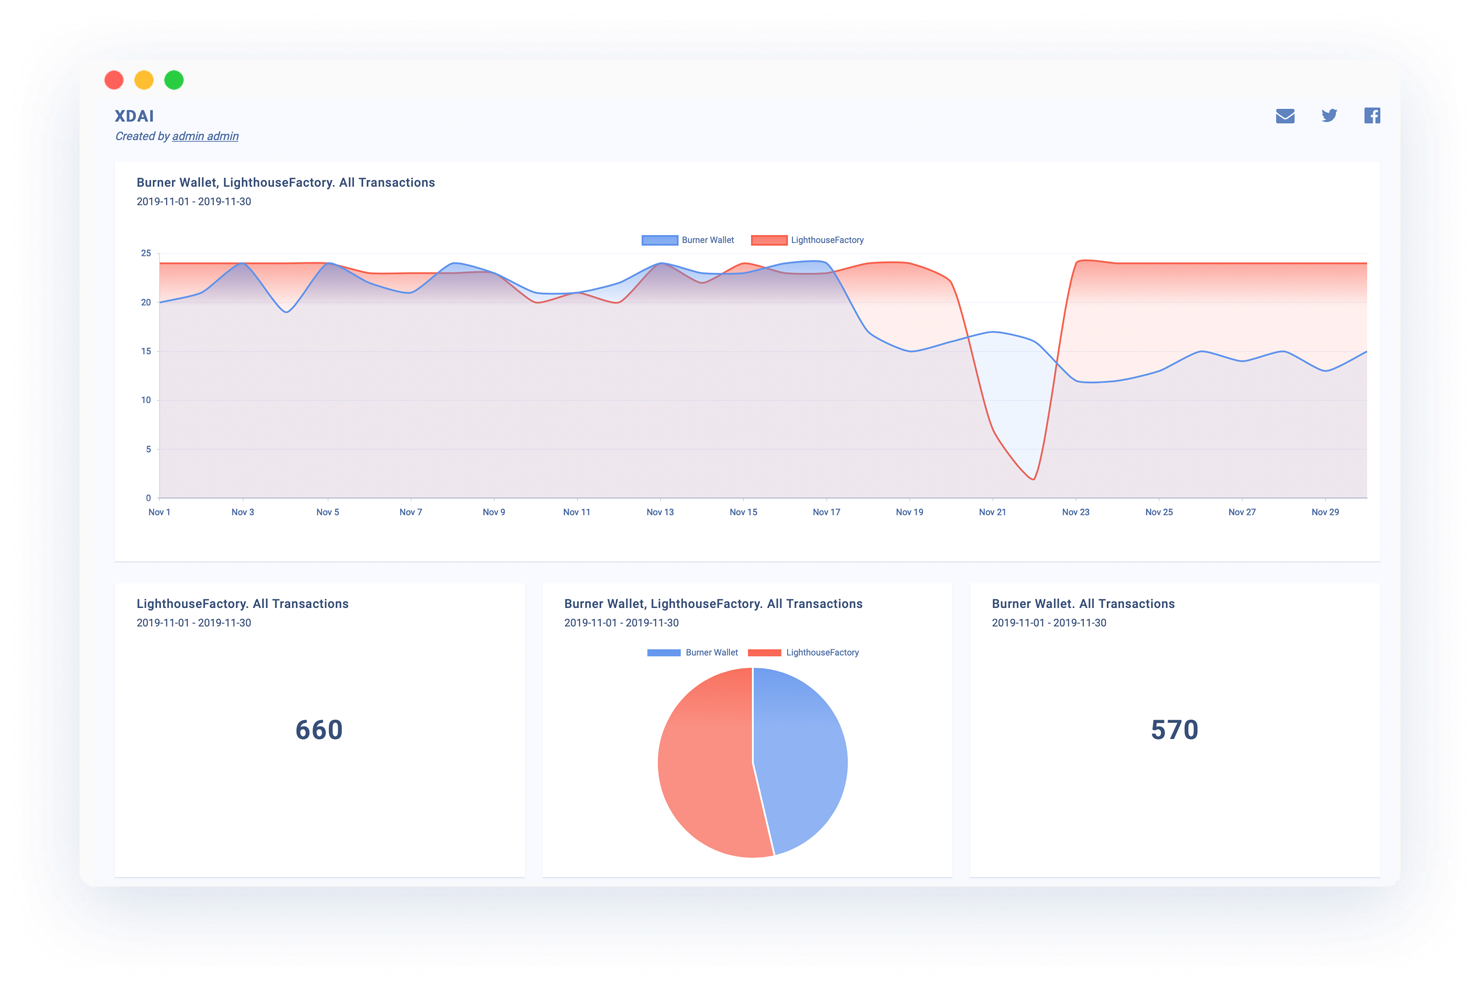 Example Chainbeat Dashboard with data from xDAI and PoA networks